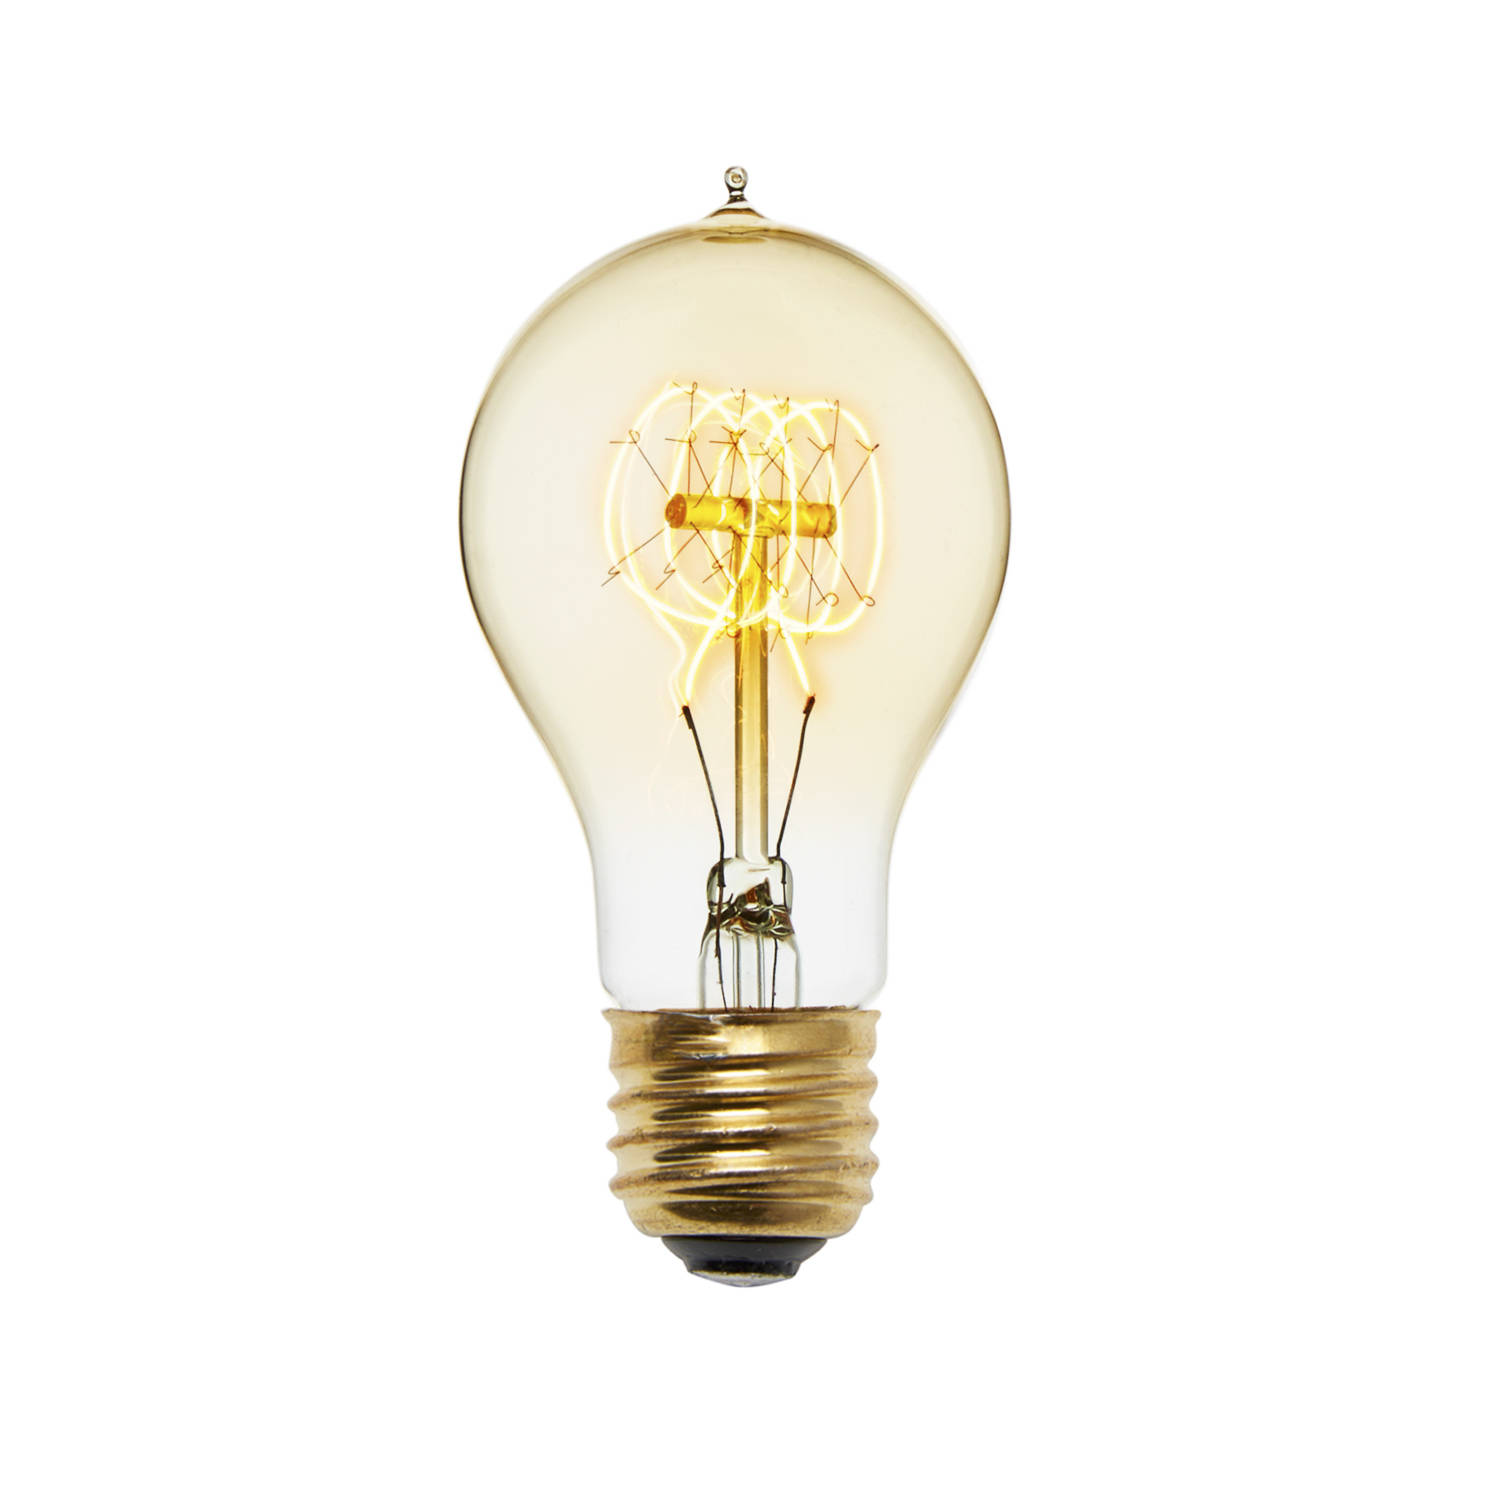 Old fashion light bulb 95